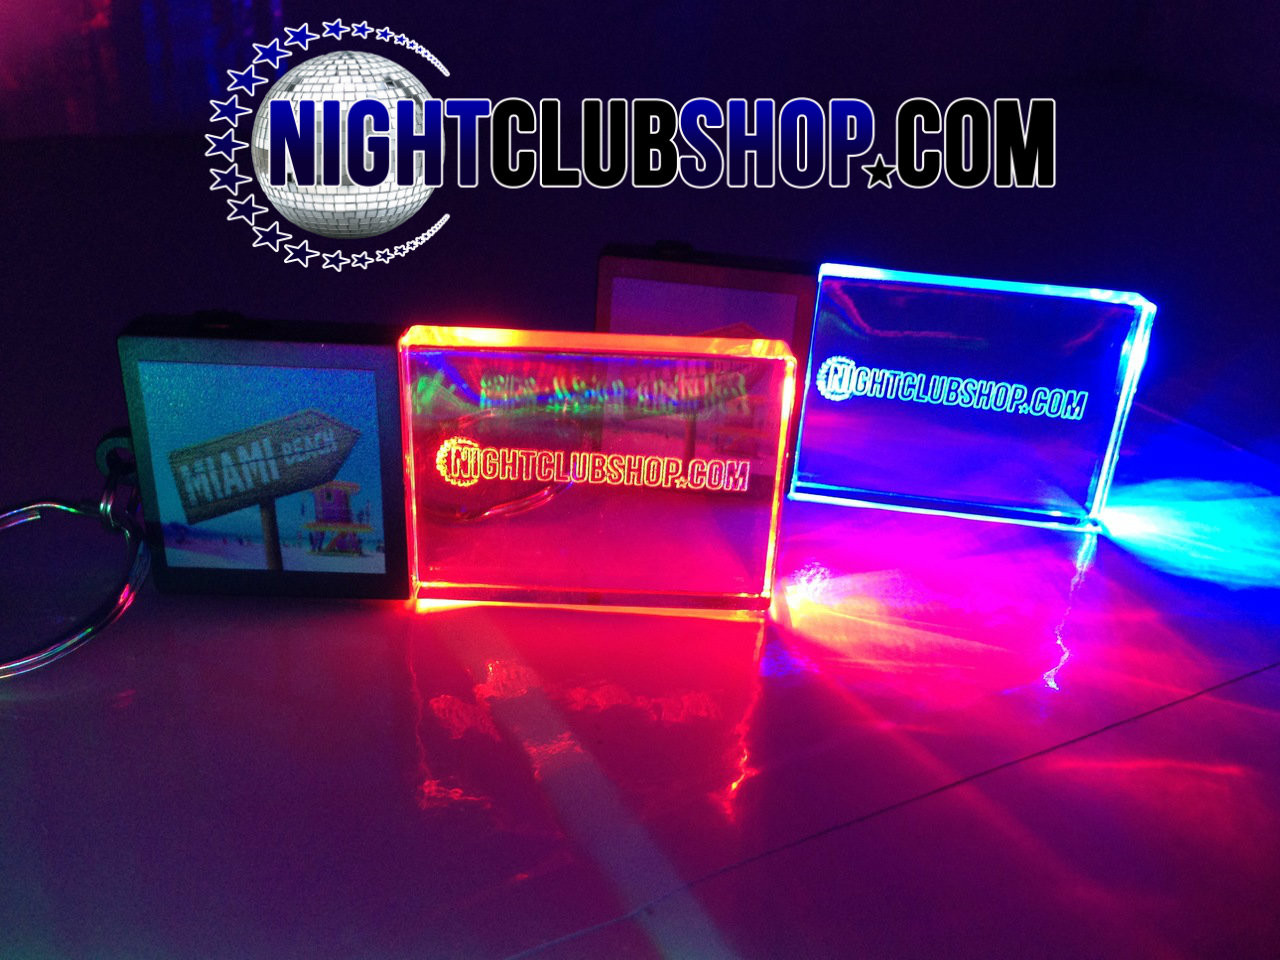 LED,Keychain,Key,chain,LED keychain, custom, BEAM, dual, print,engraved, logo,text, laser engraved,personalized,promo,merch,fundraiser,nightclub,fund raiser